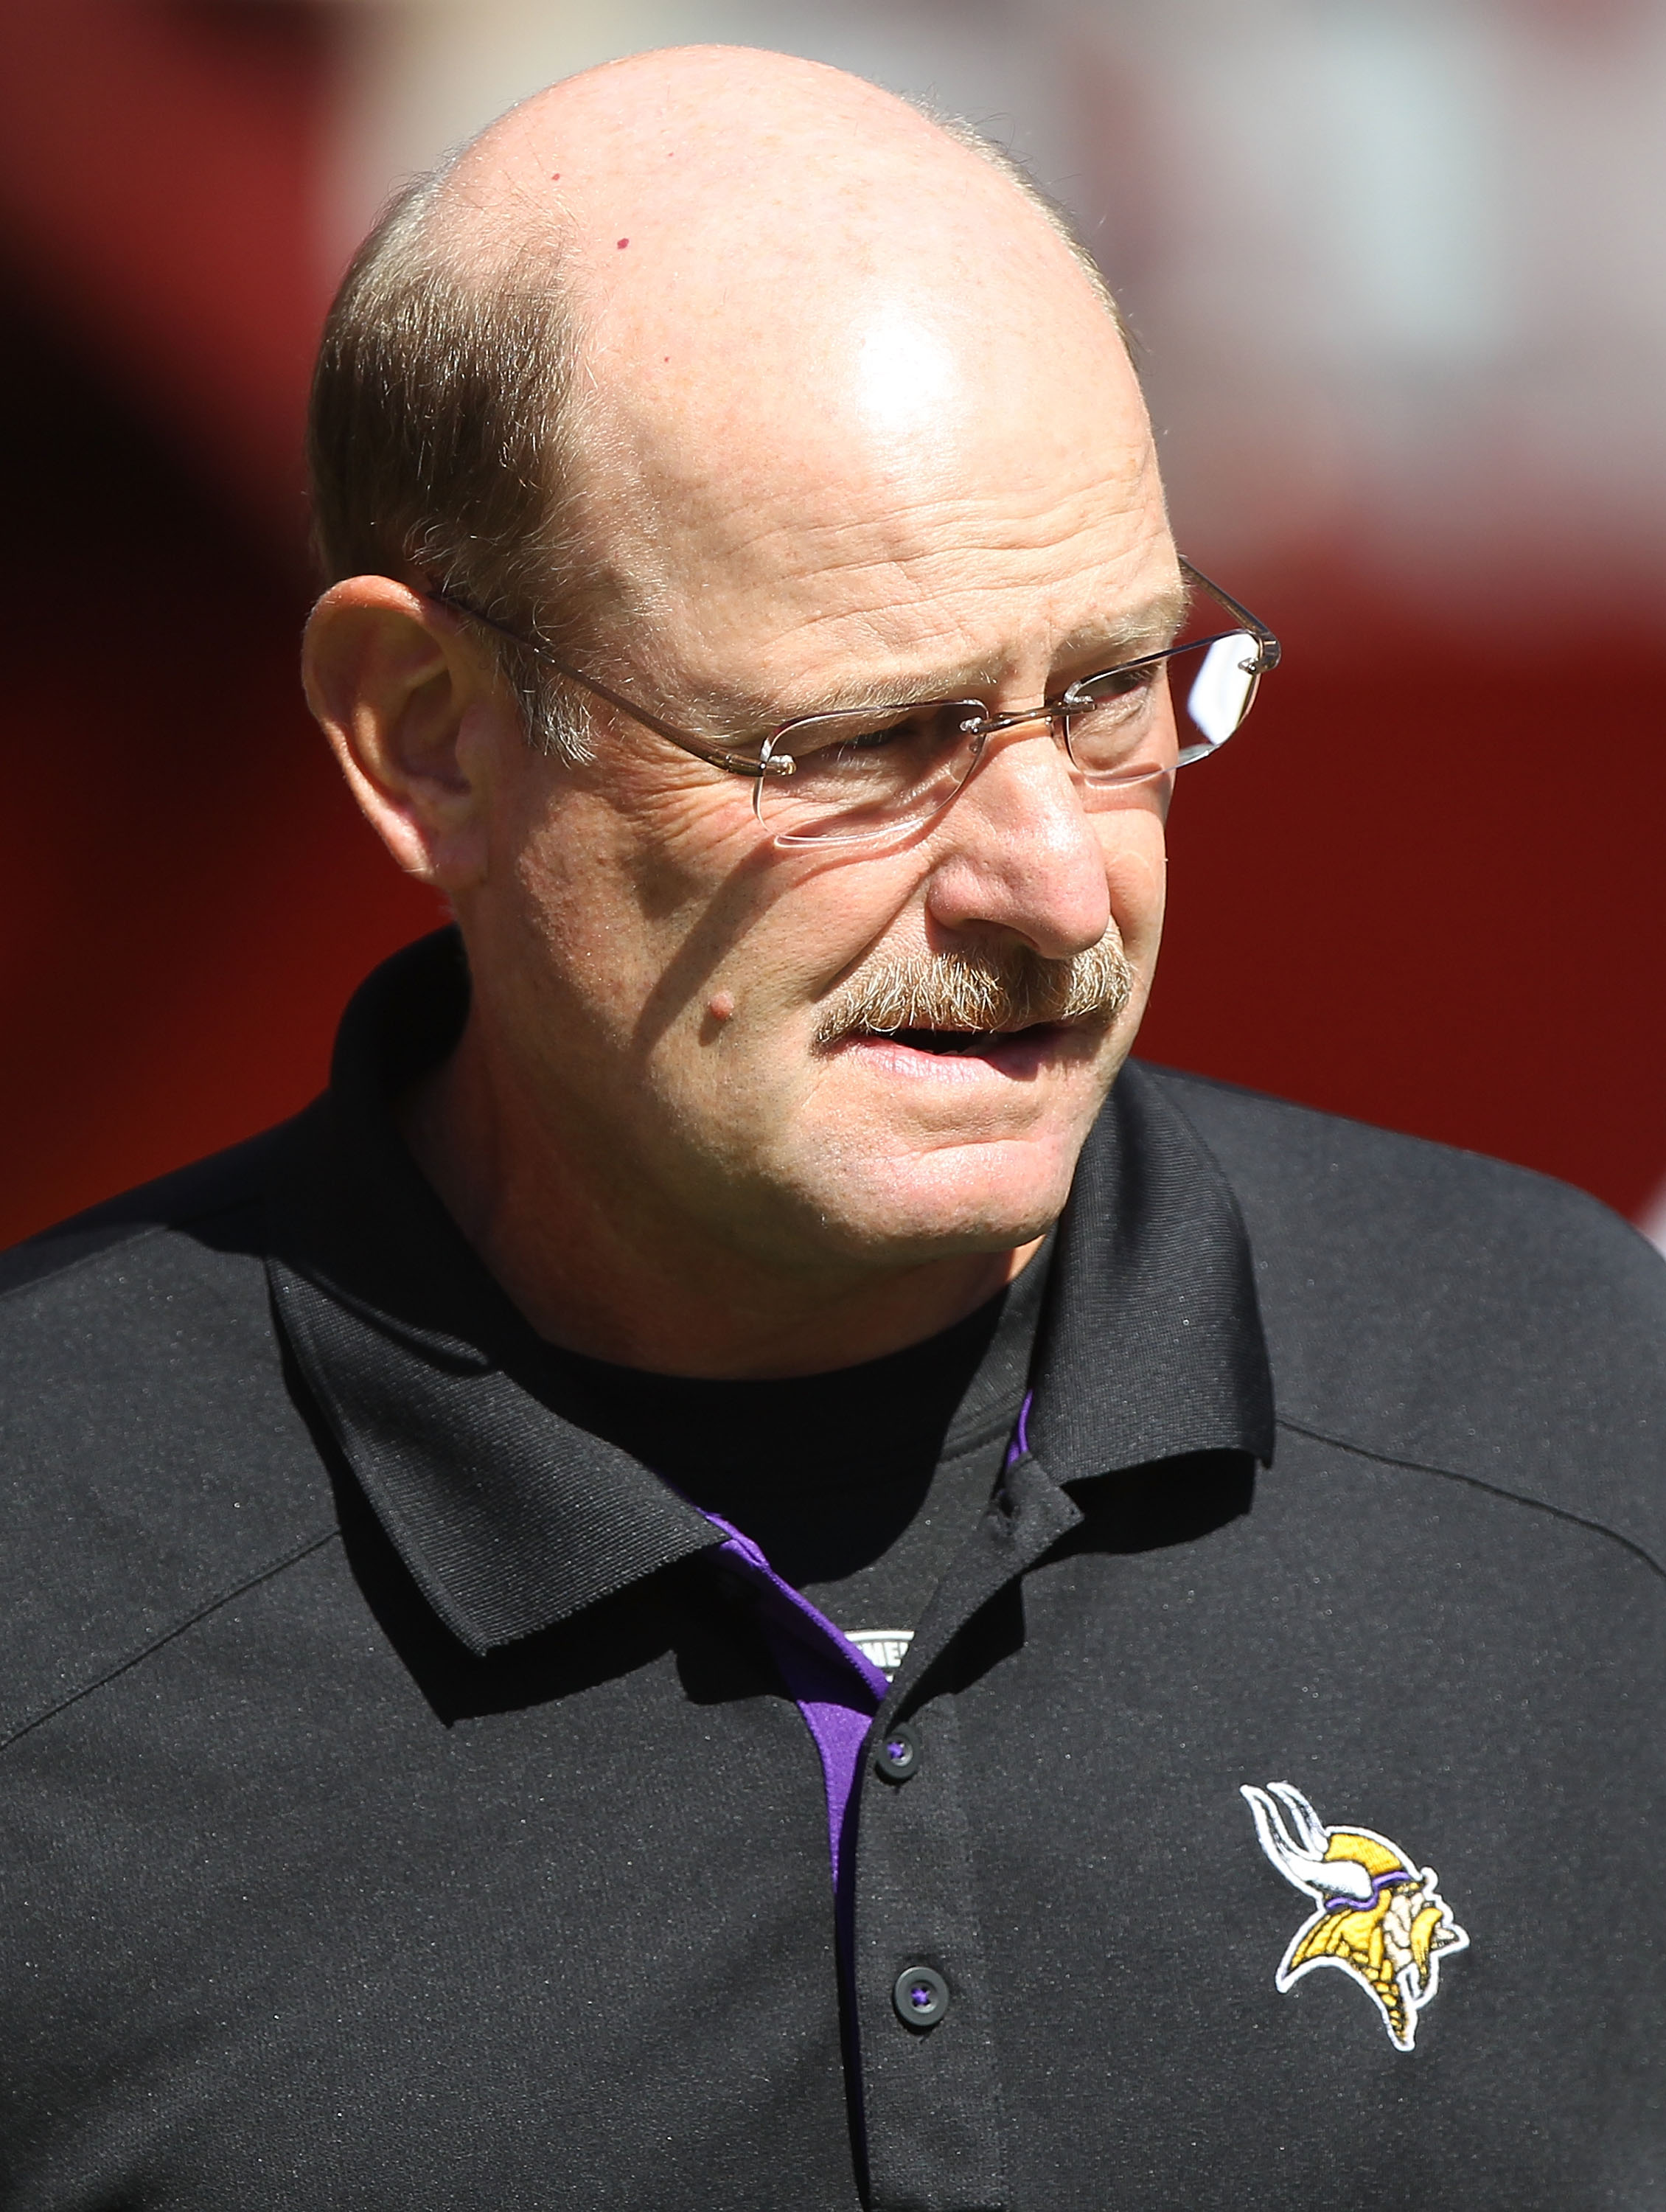 SAN FRANCISCO - AUGUST 22:  Head coach Brad Childress of the Minnesota Vikings looks on against the San Francisco 49er during an NFL pre-season game at Candlestick Park on August 22, 2010 in San Francisco, California. (Photo by Jed Jacobsohn/Getty Images)